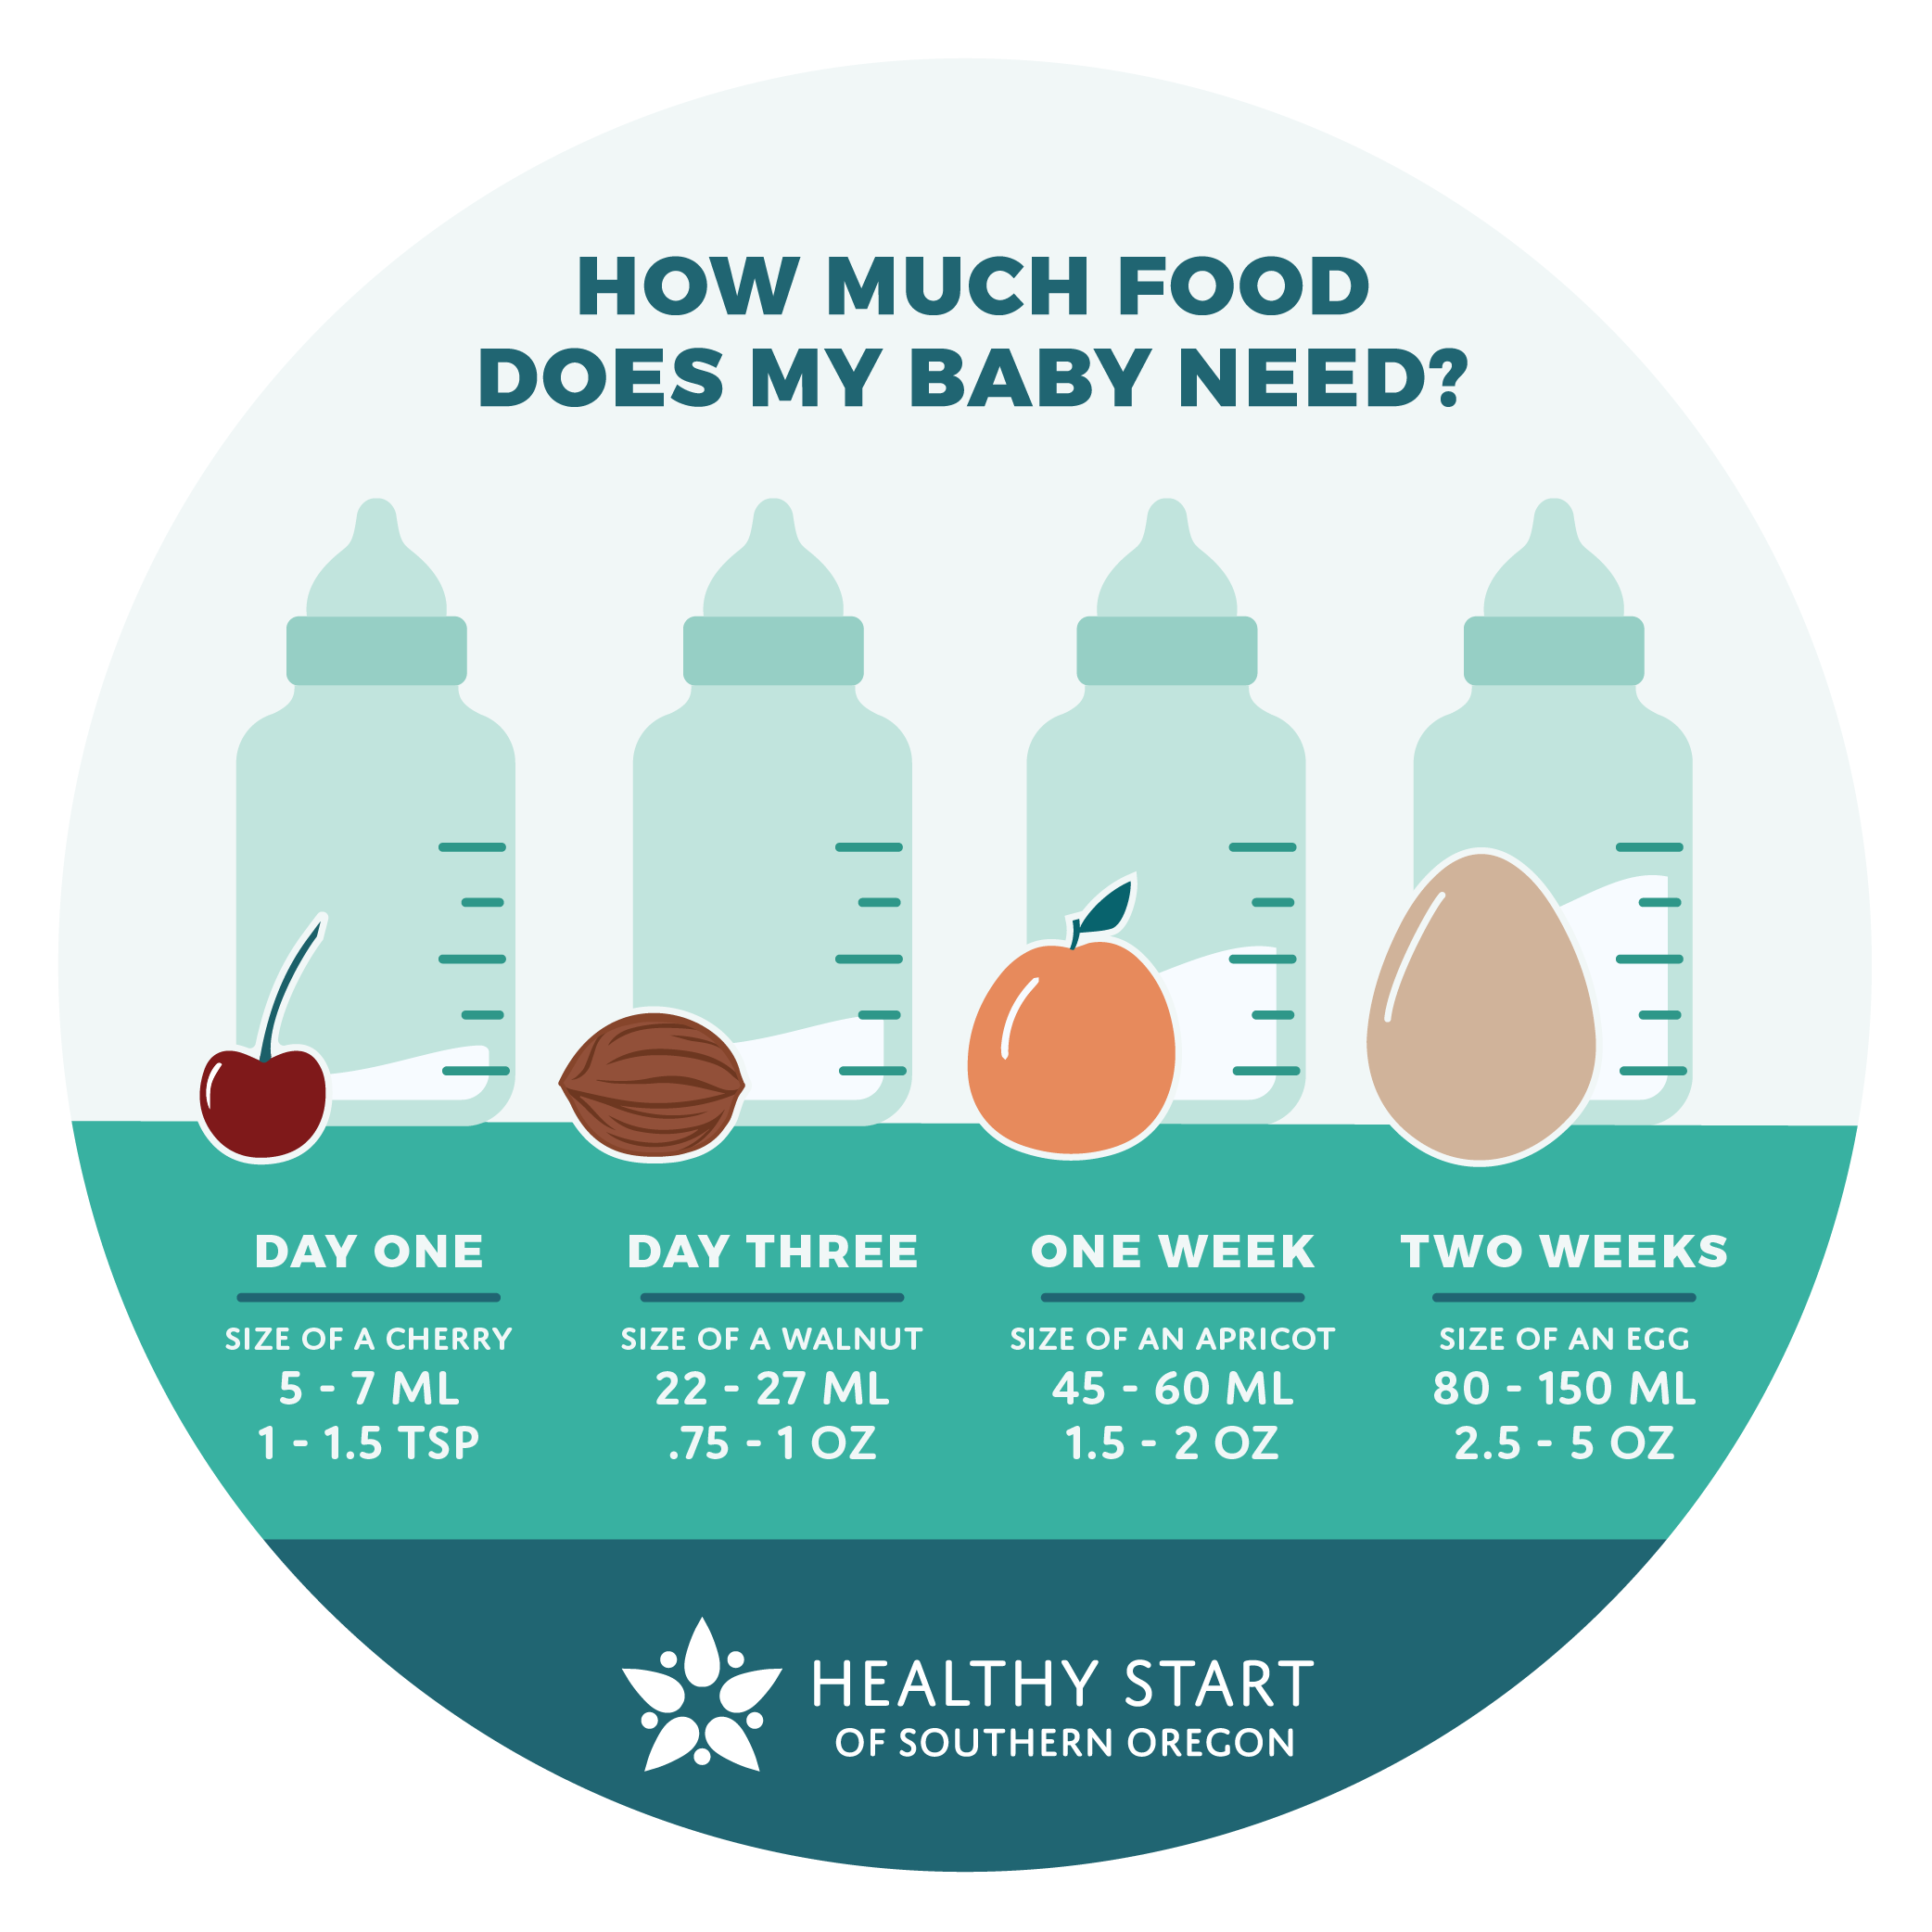 How much milk does my baby need?